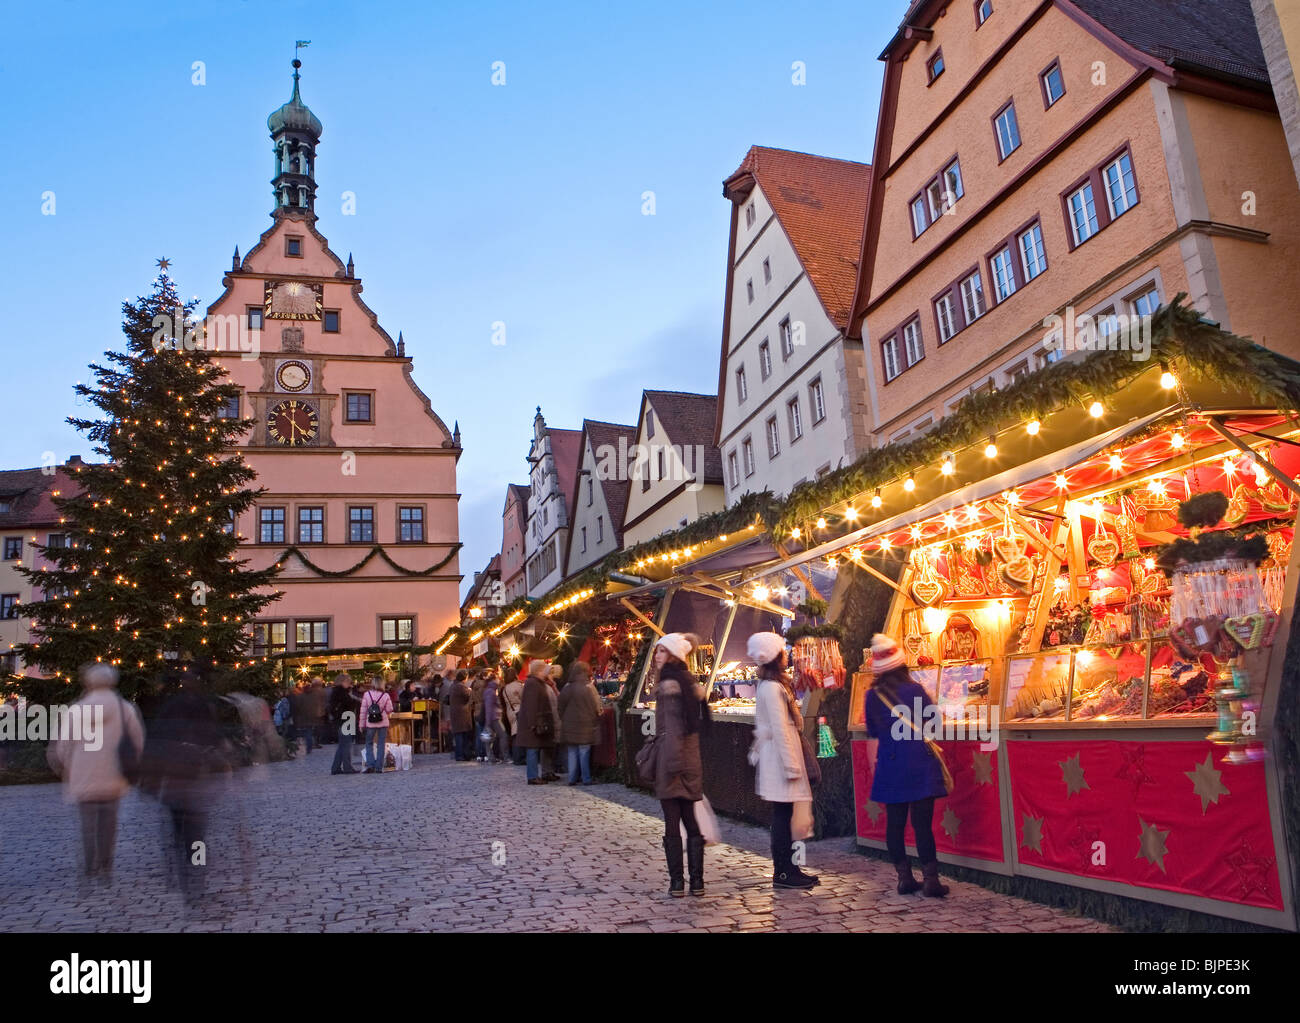 rothenburg christmas market stock photos rothenburg. Black Bedroom Furniture Sets. Home Design Ideas